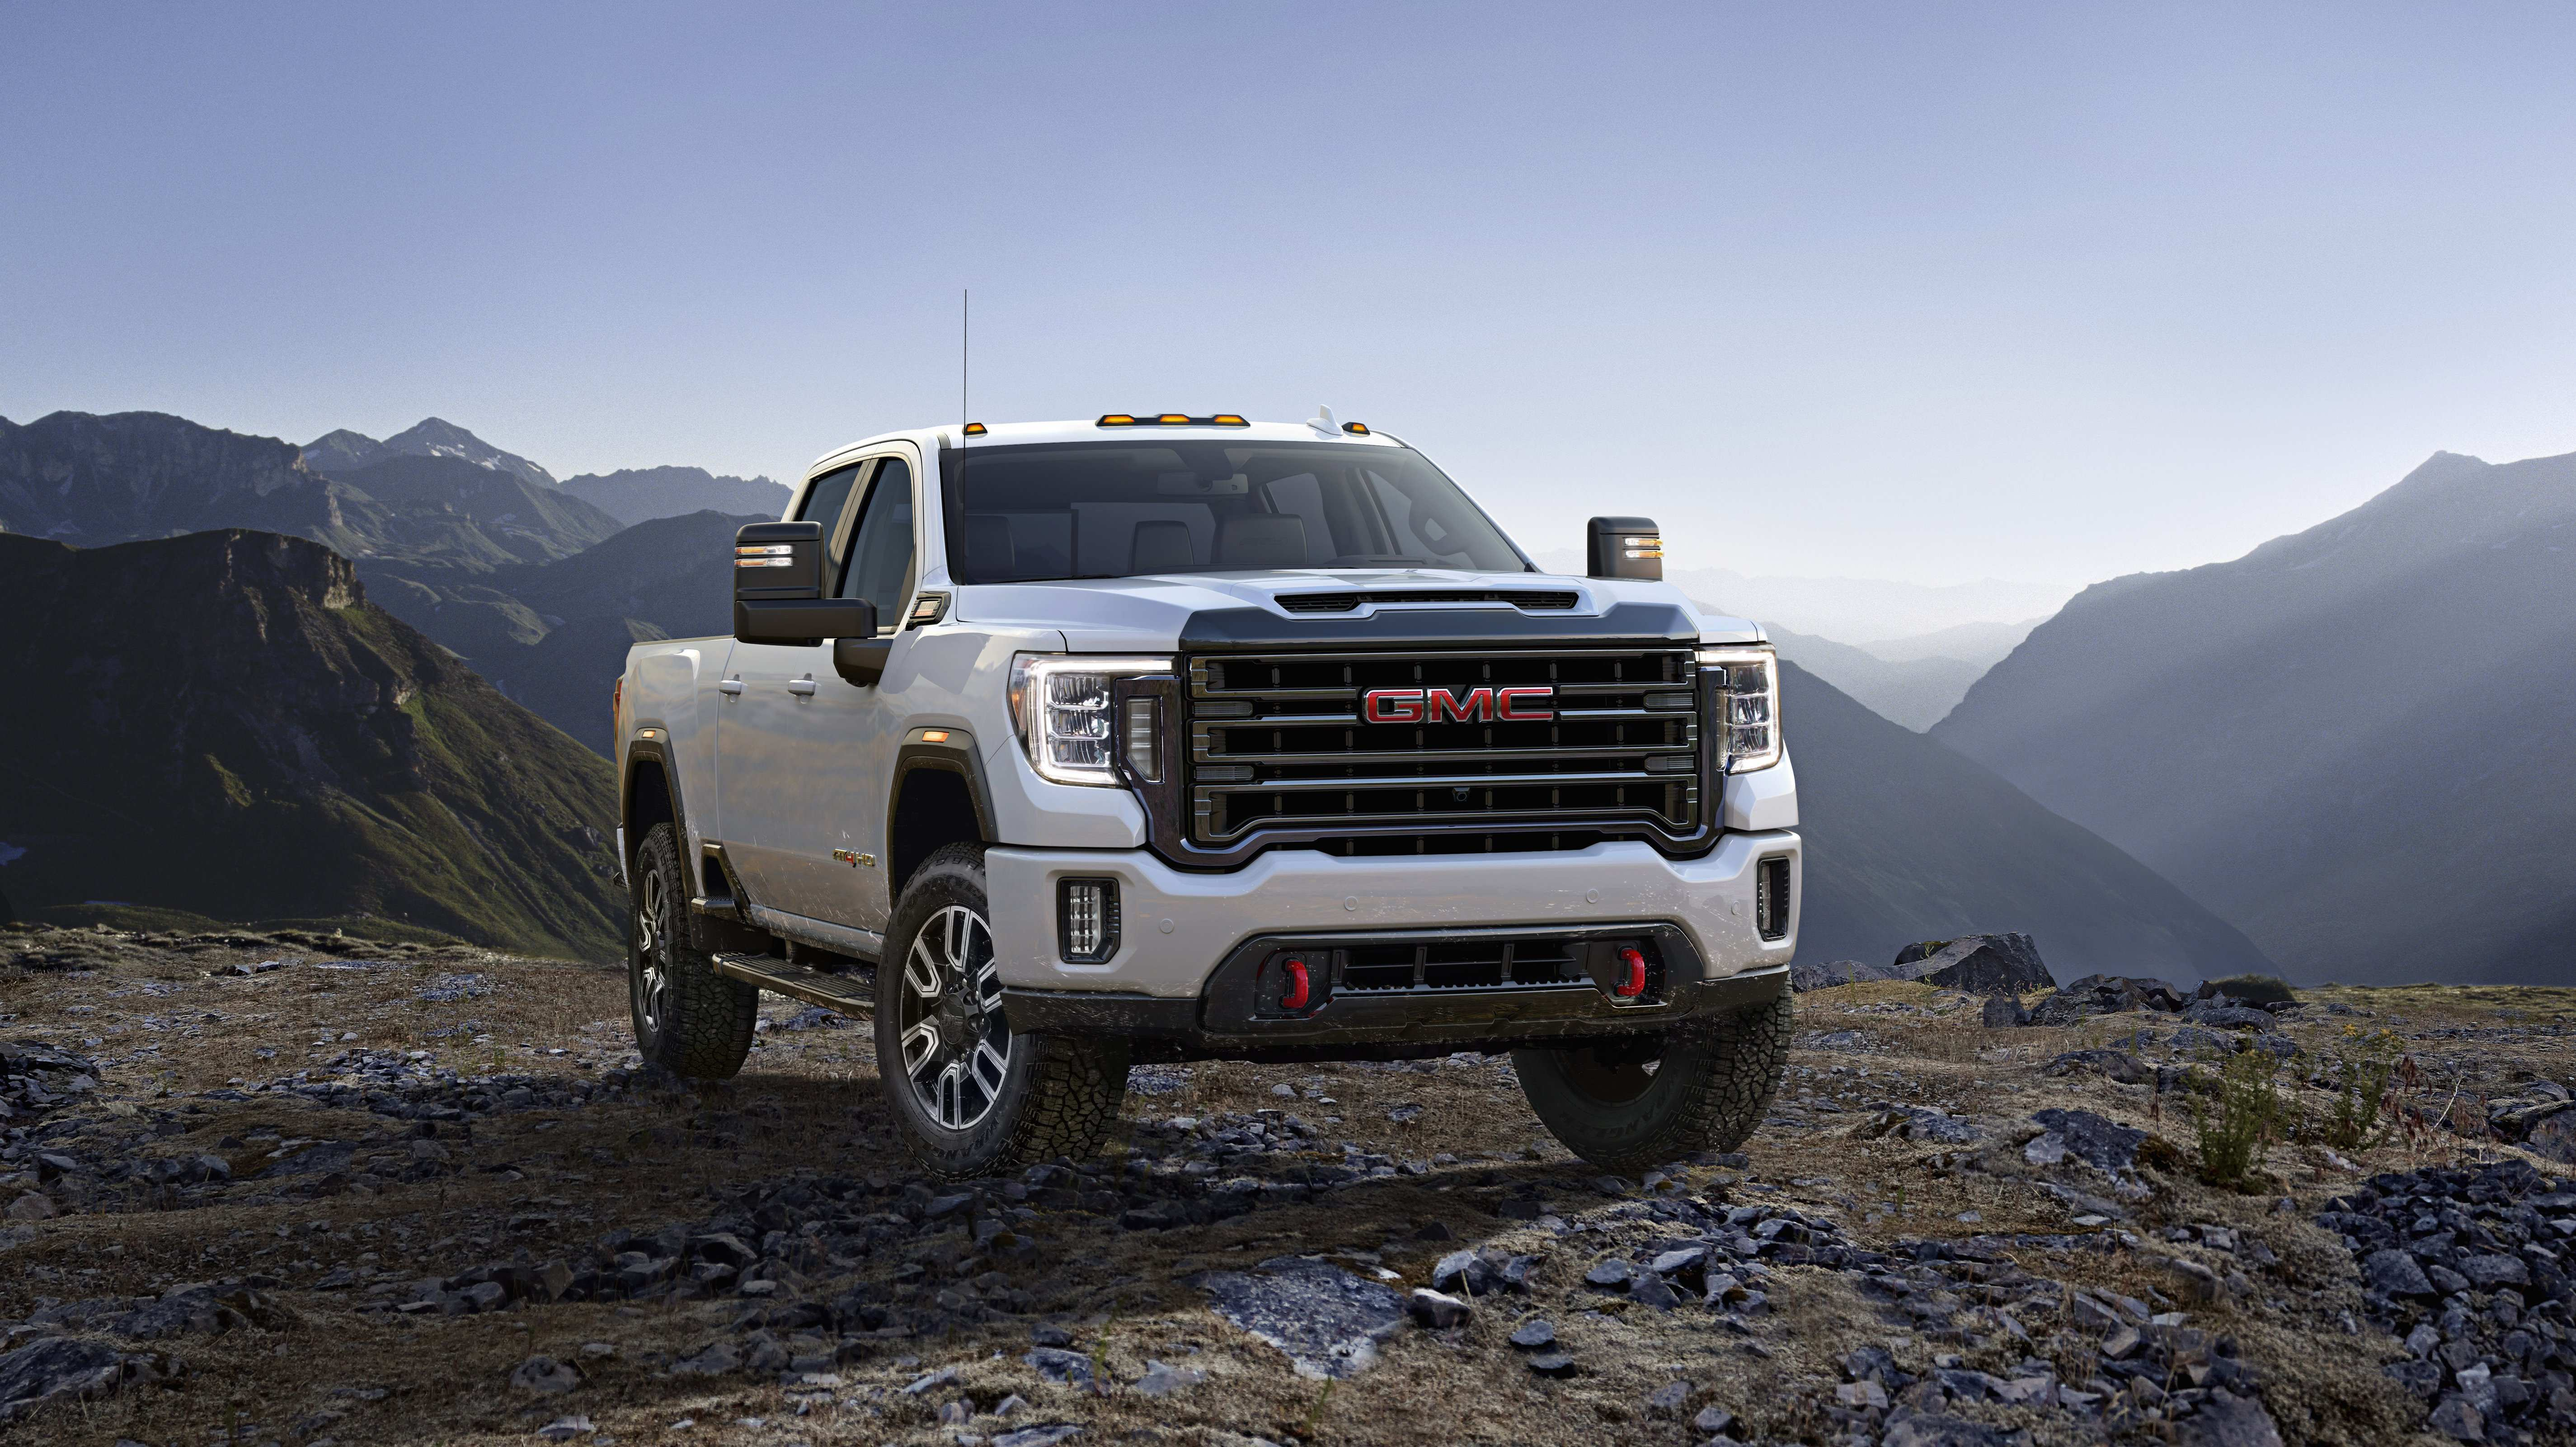 69 All New GMC At4 Diesel 2020 First Drive